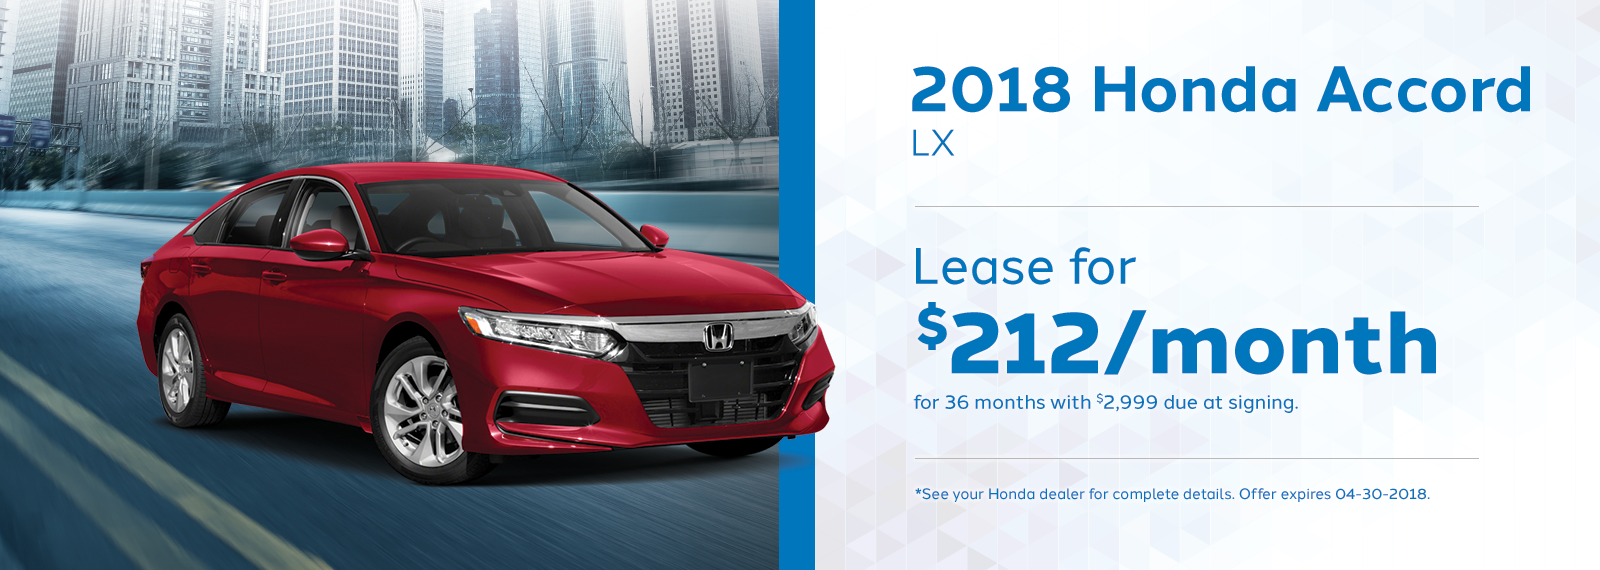 Accord Offer April